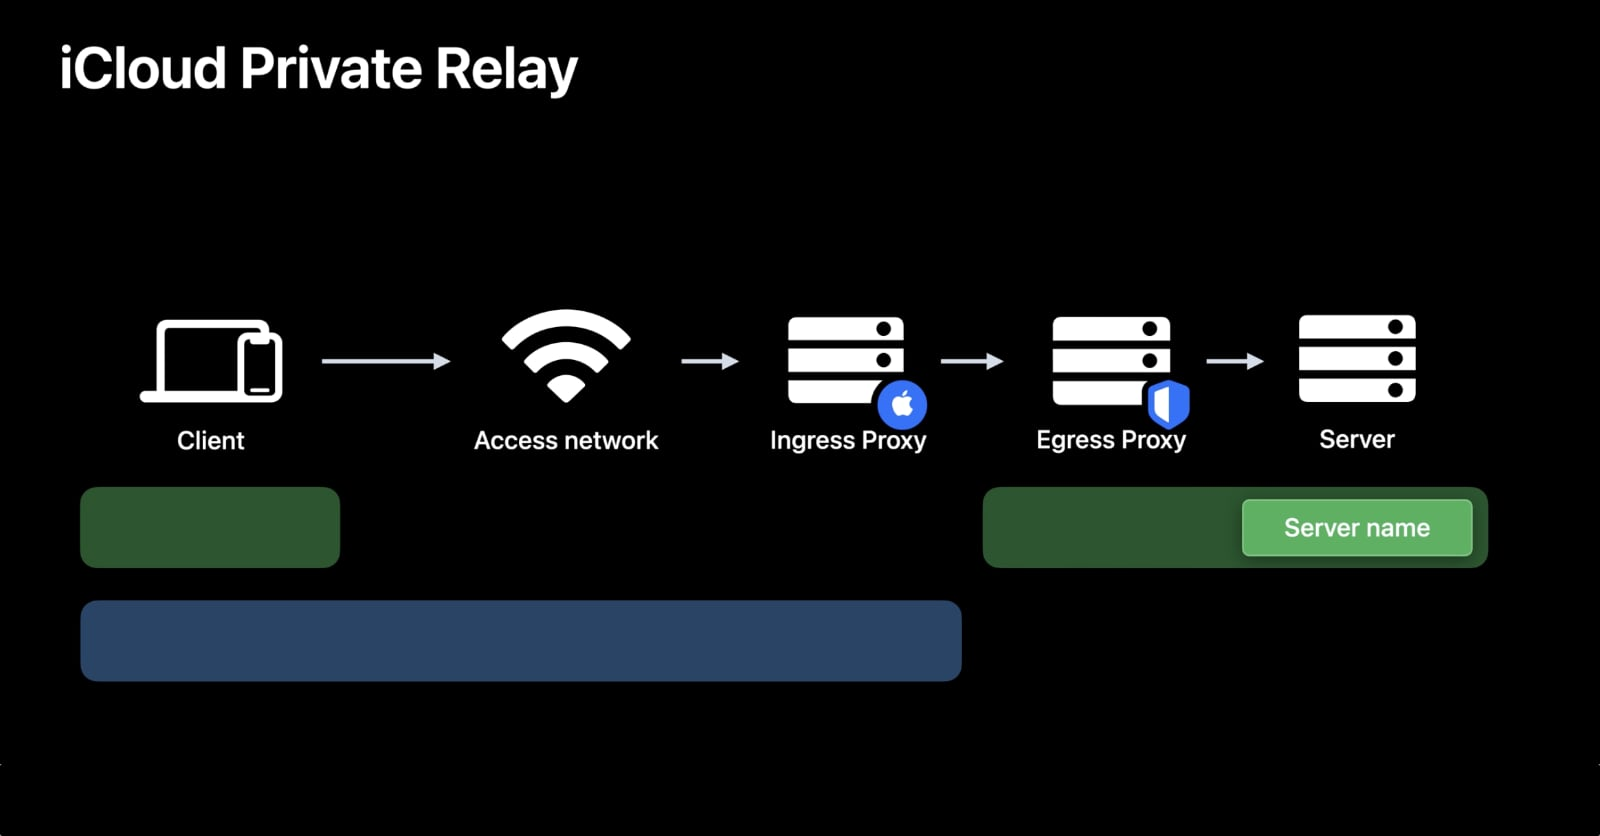 At this week's WWDC Keynote, Apple announced iCloud Private Relay, a privacy feature aimed towards further separating you and your browsing activity